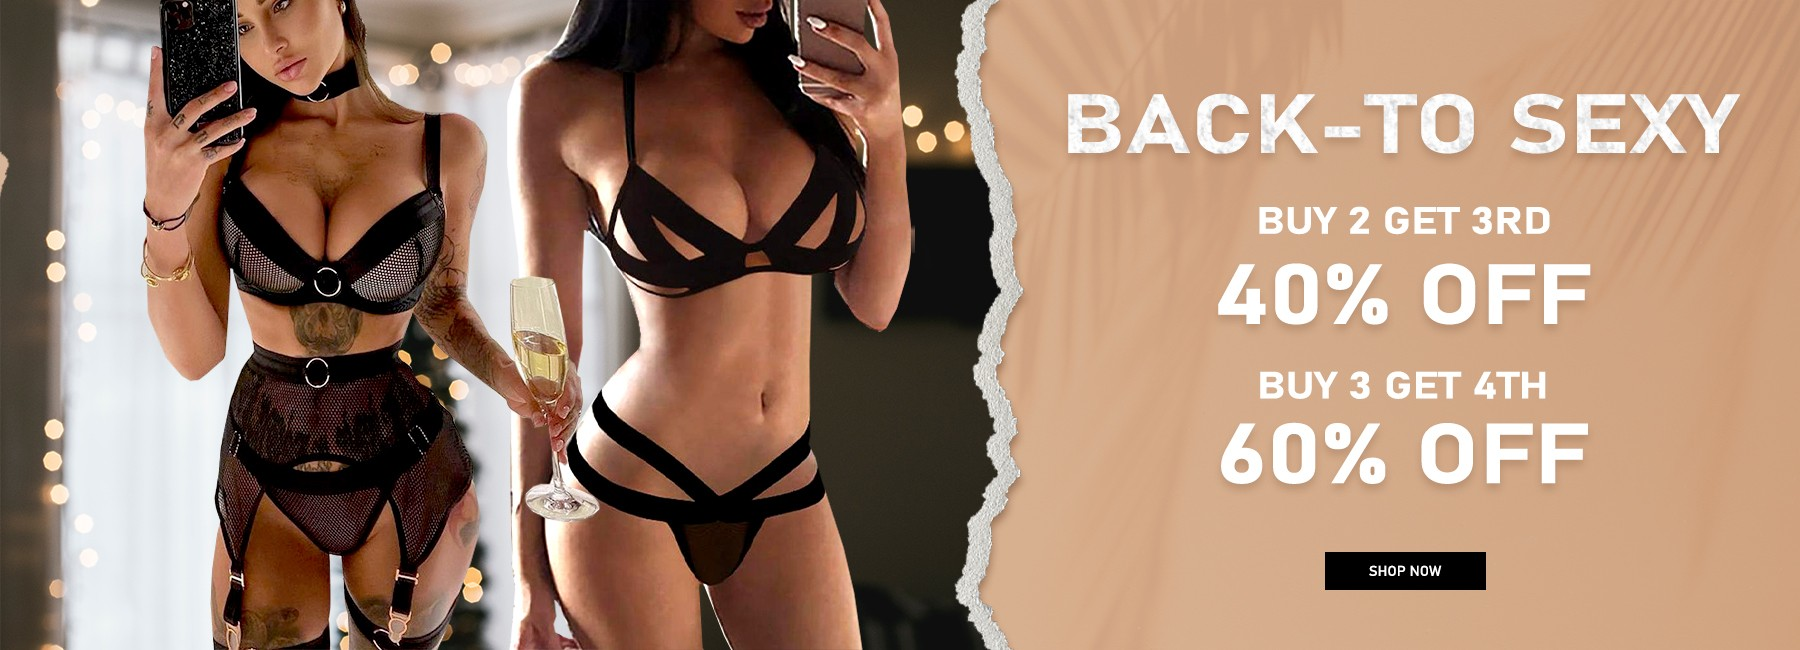 level-up with hot new lingerie